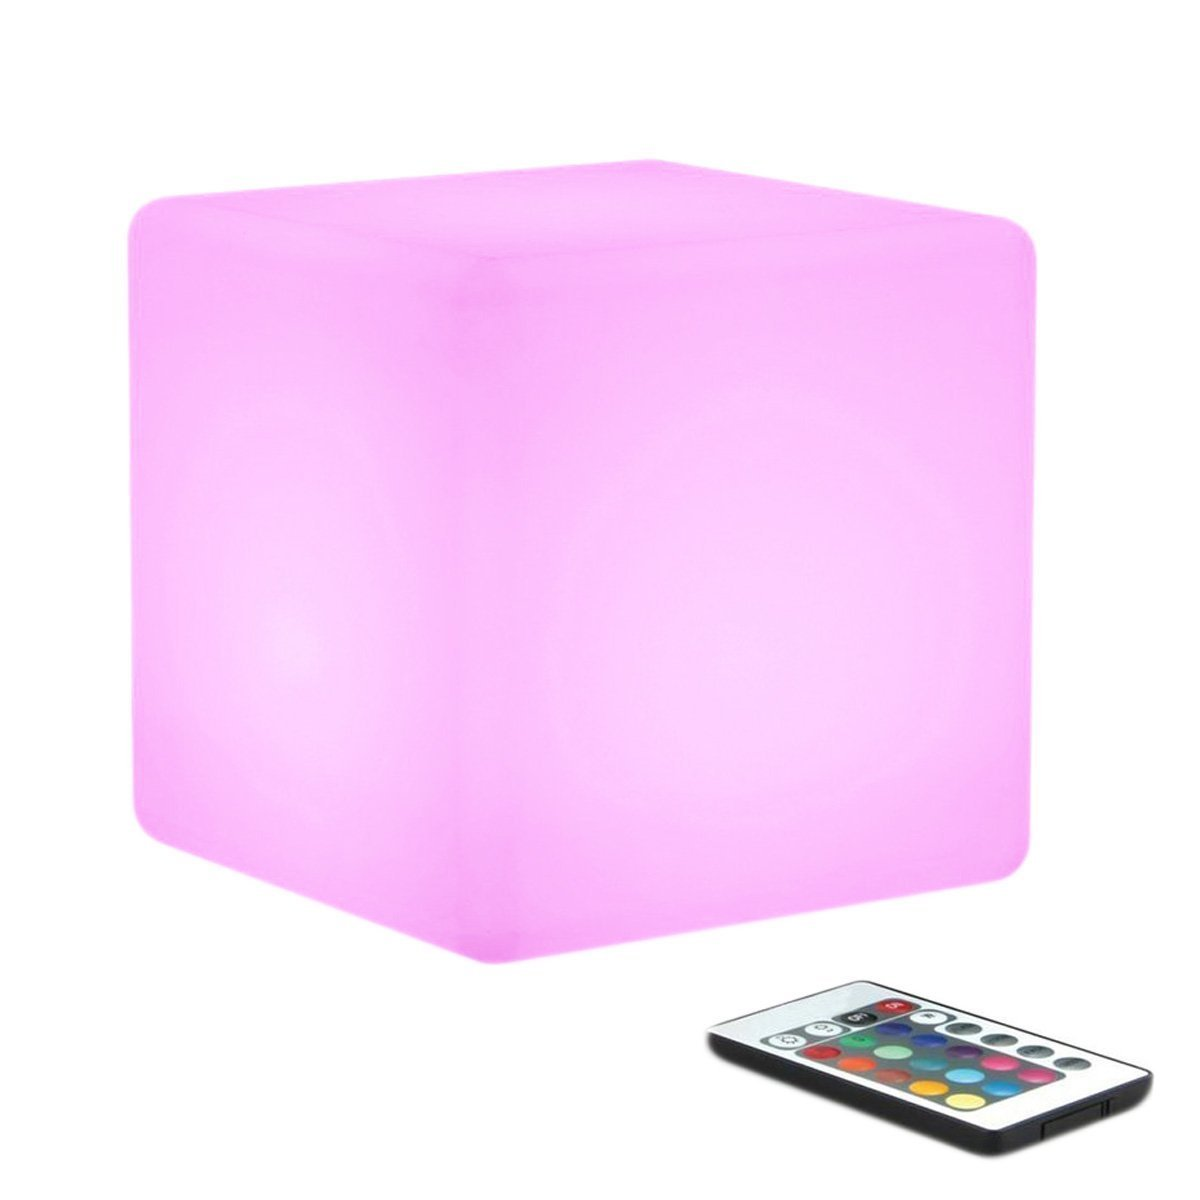 WONFAST LED Mood Cube Light, Waterproof Rechargeable LED Bedside Table Lamp,Night Light with 16 Color Change and 4 Flash Modes,Suits for Outdoor Indoor Decoration (15x15x15cm)